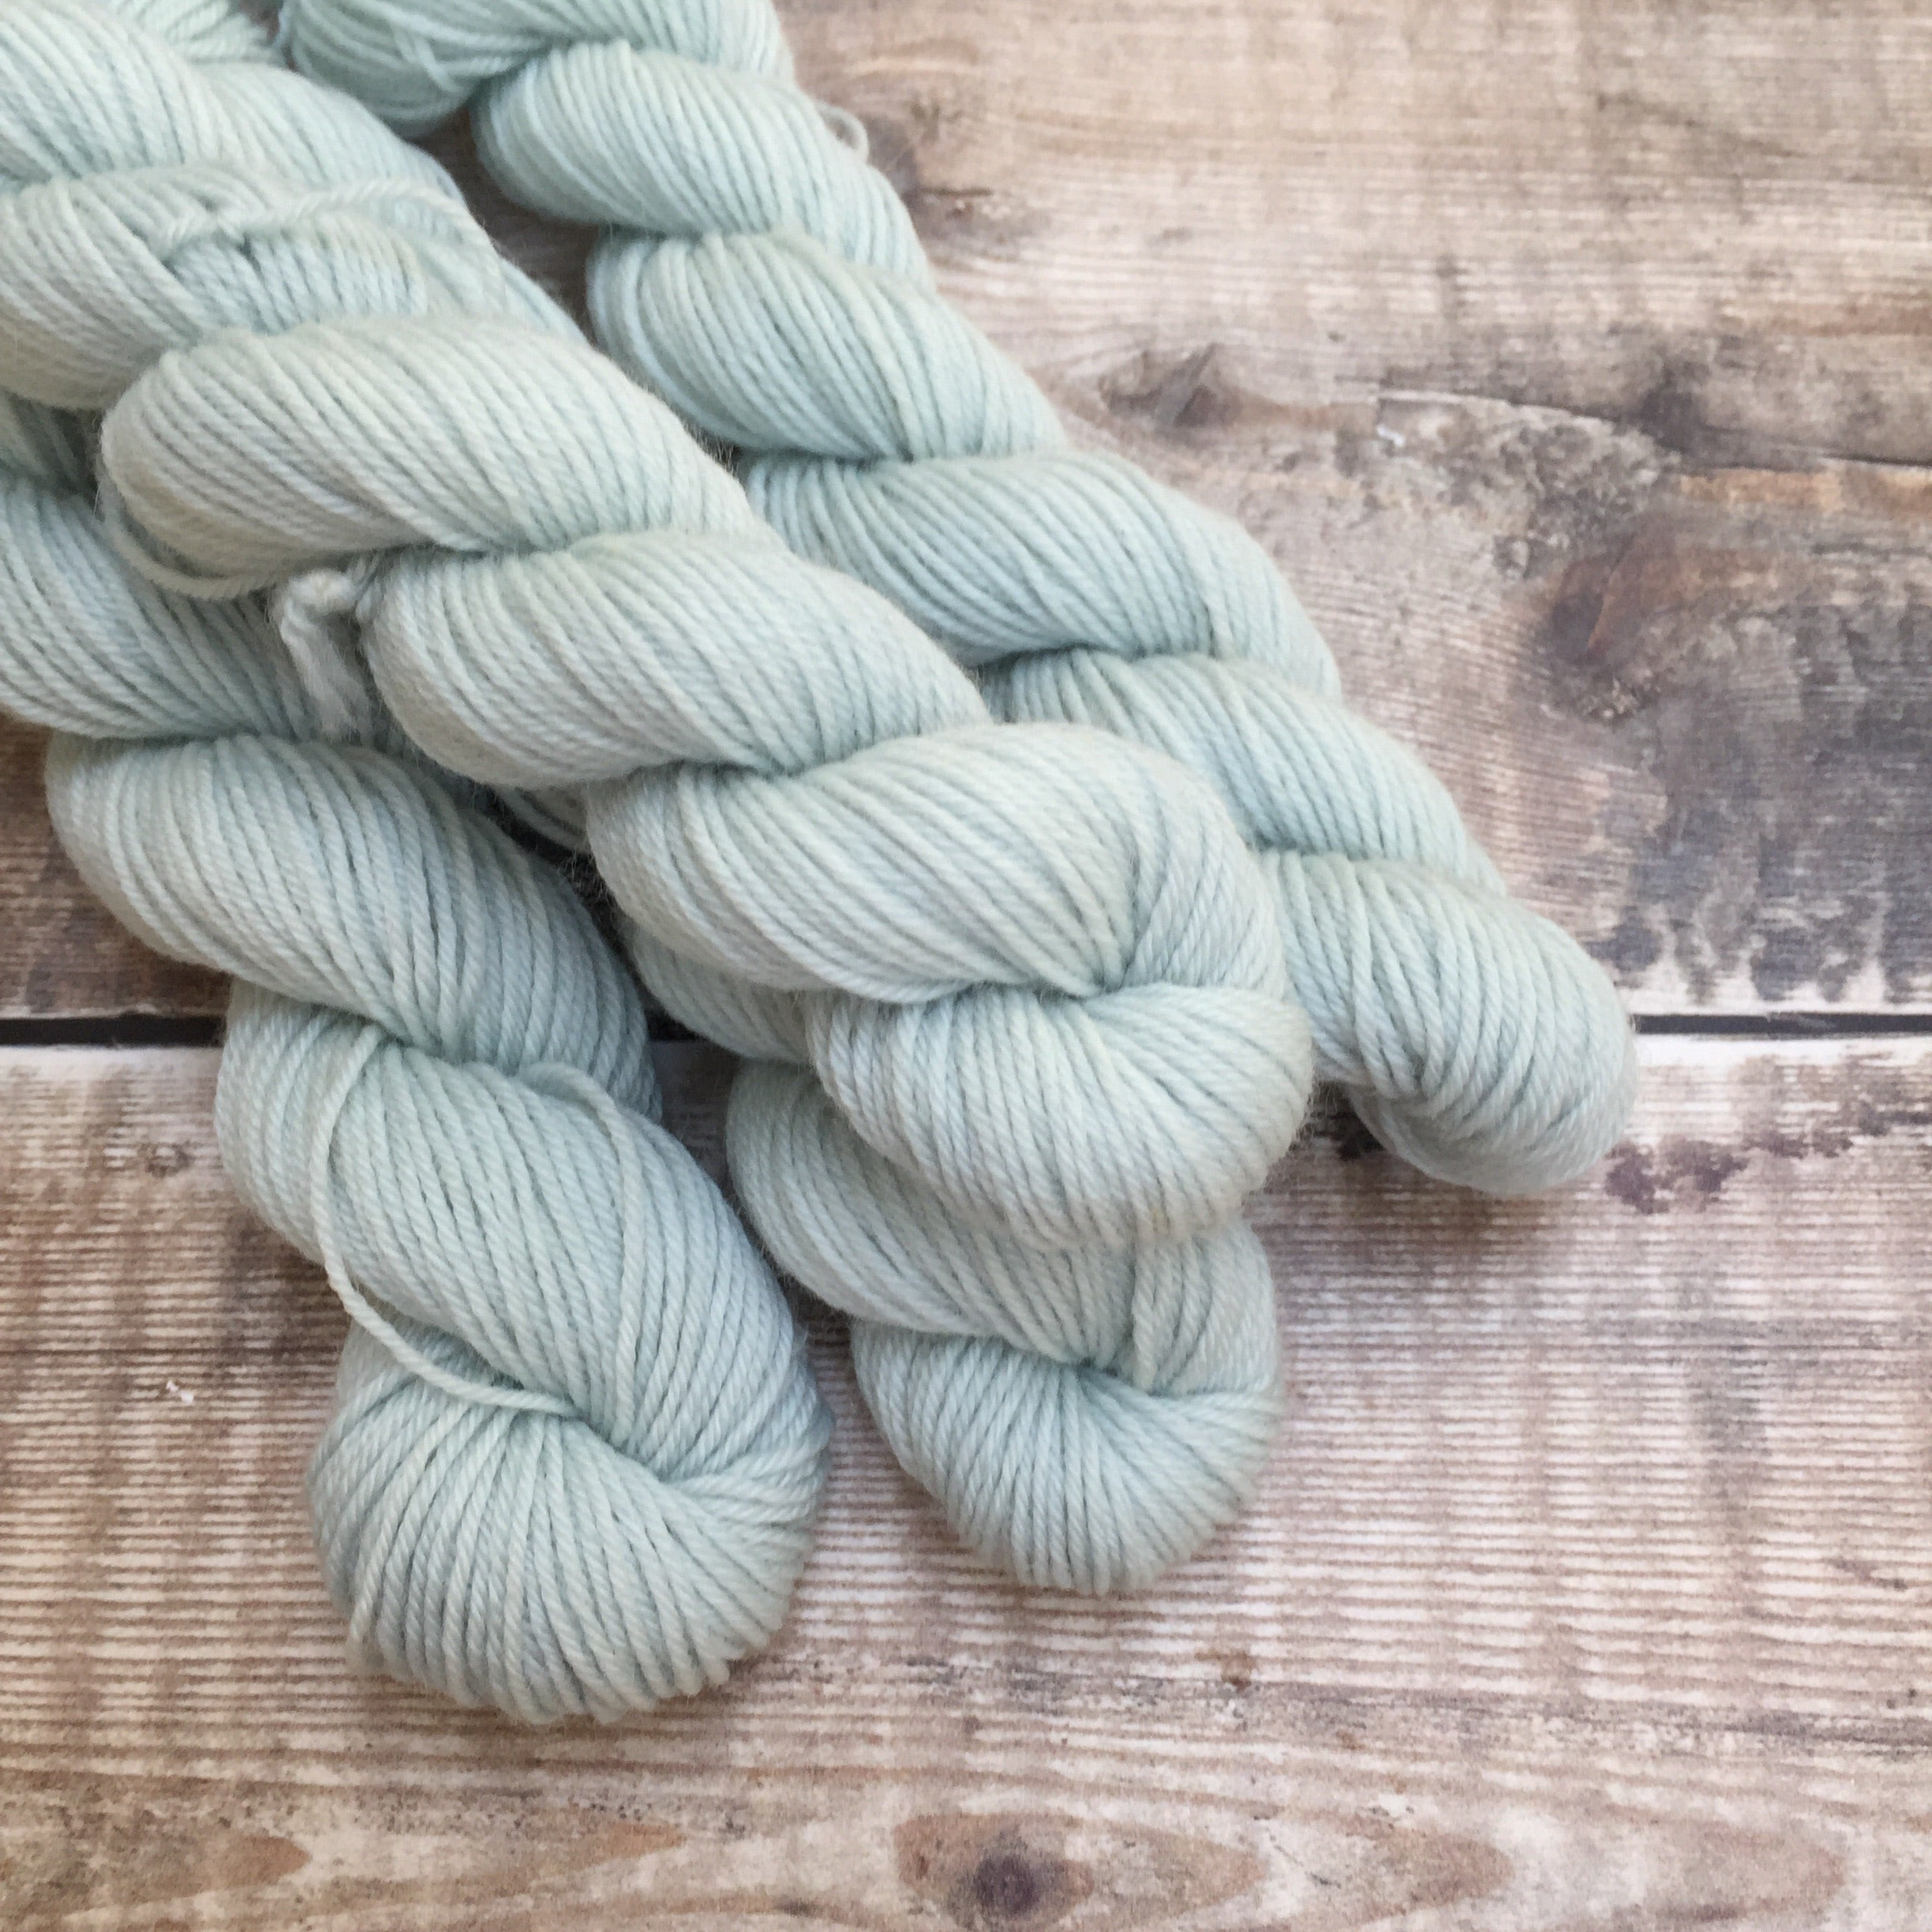 Mini skeins - Mr Bingley